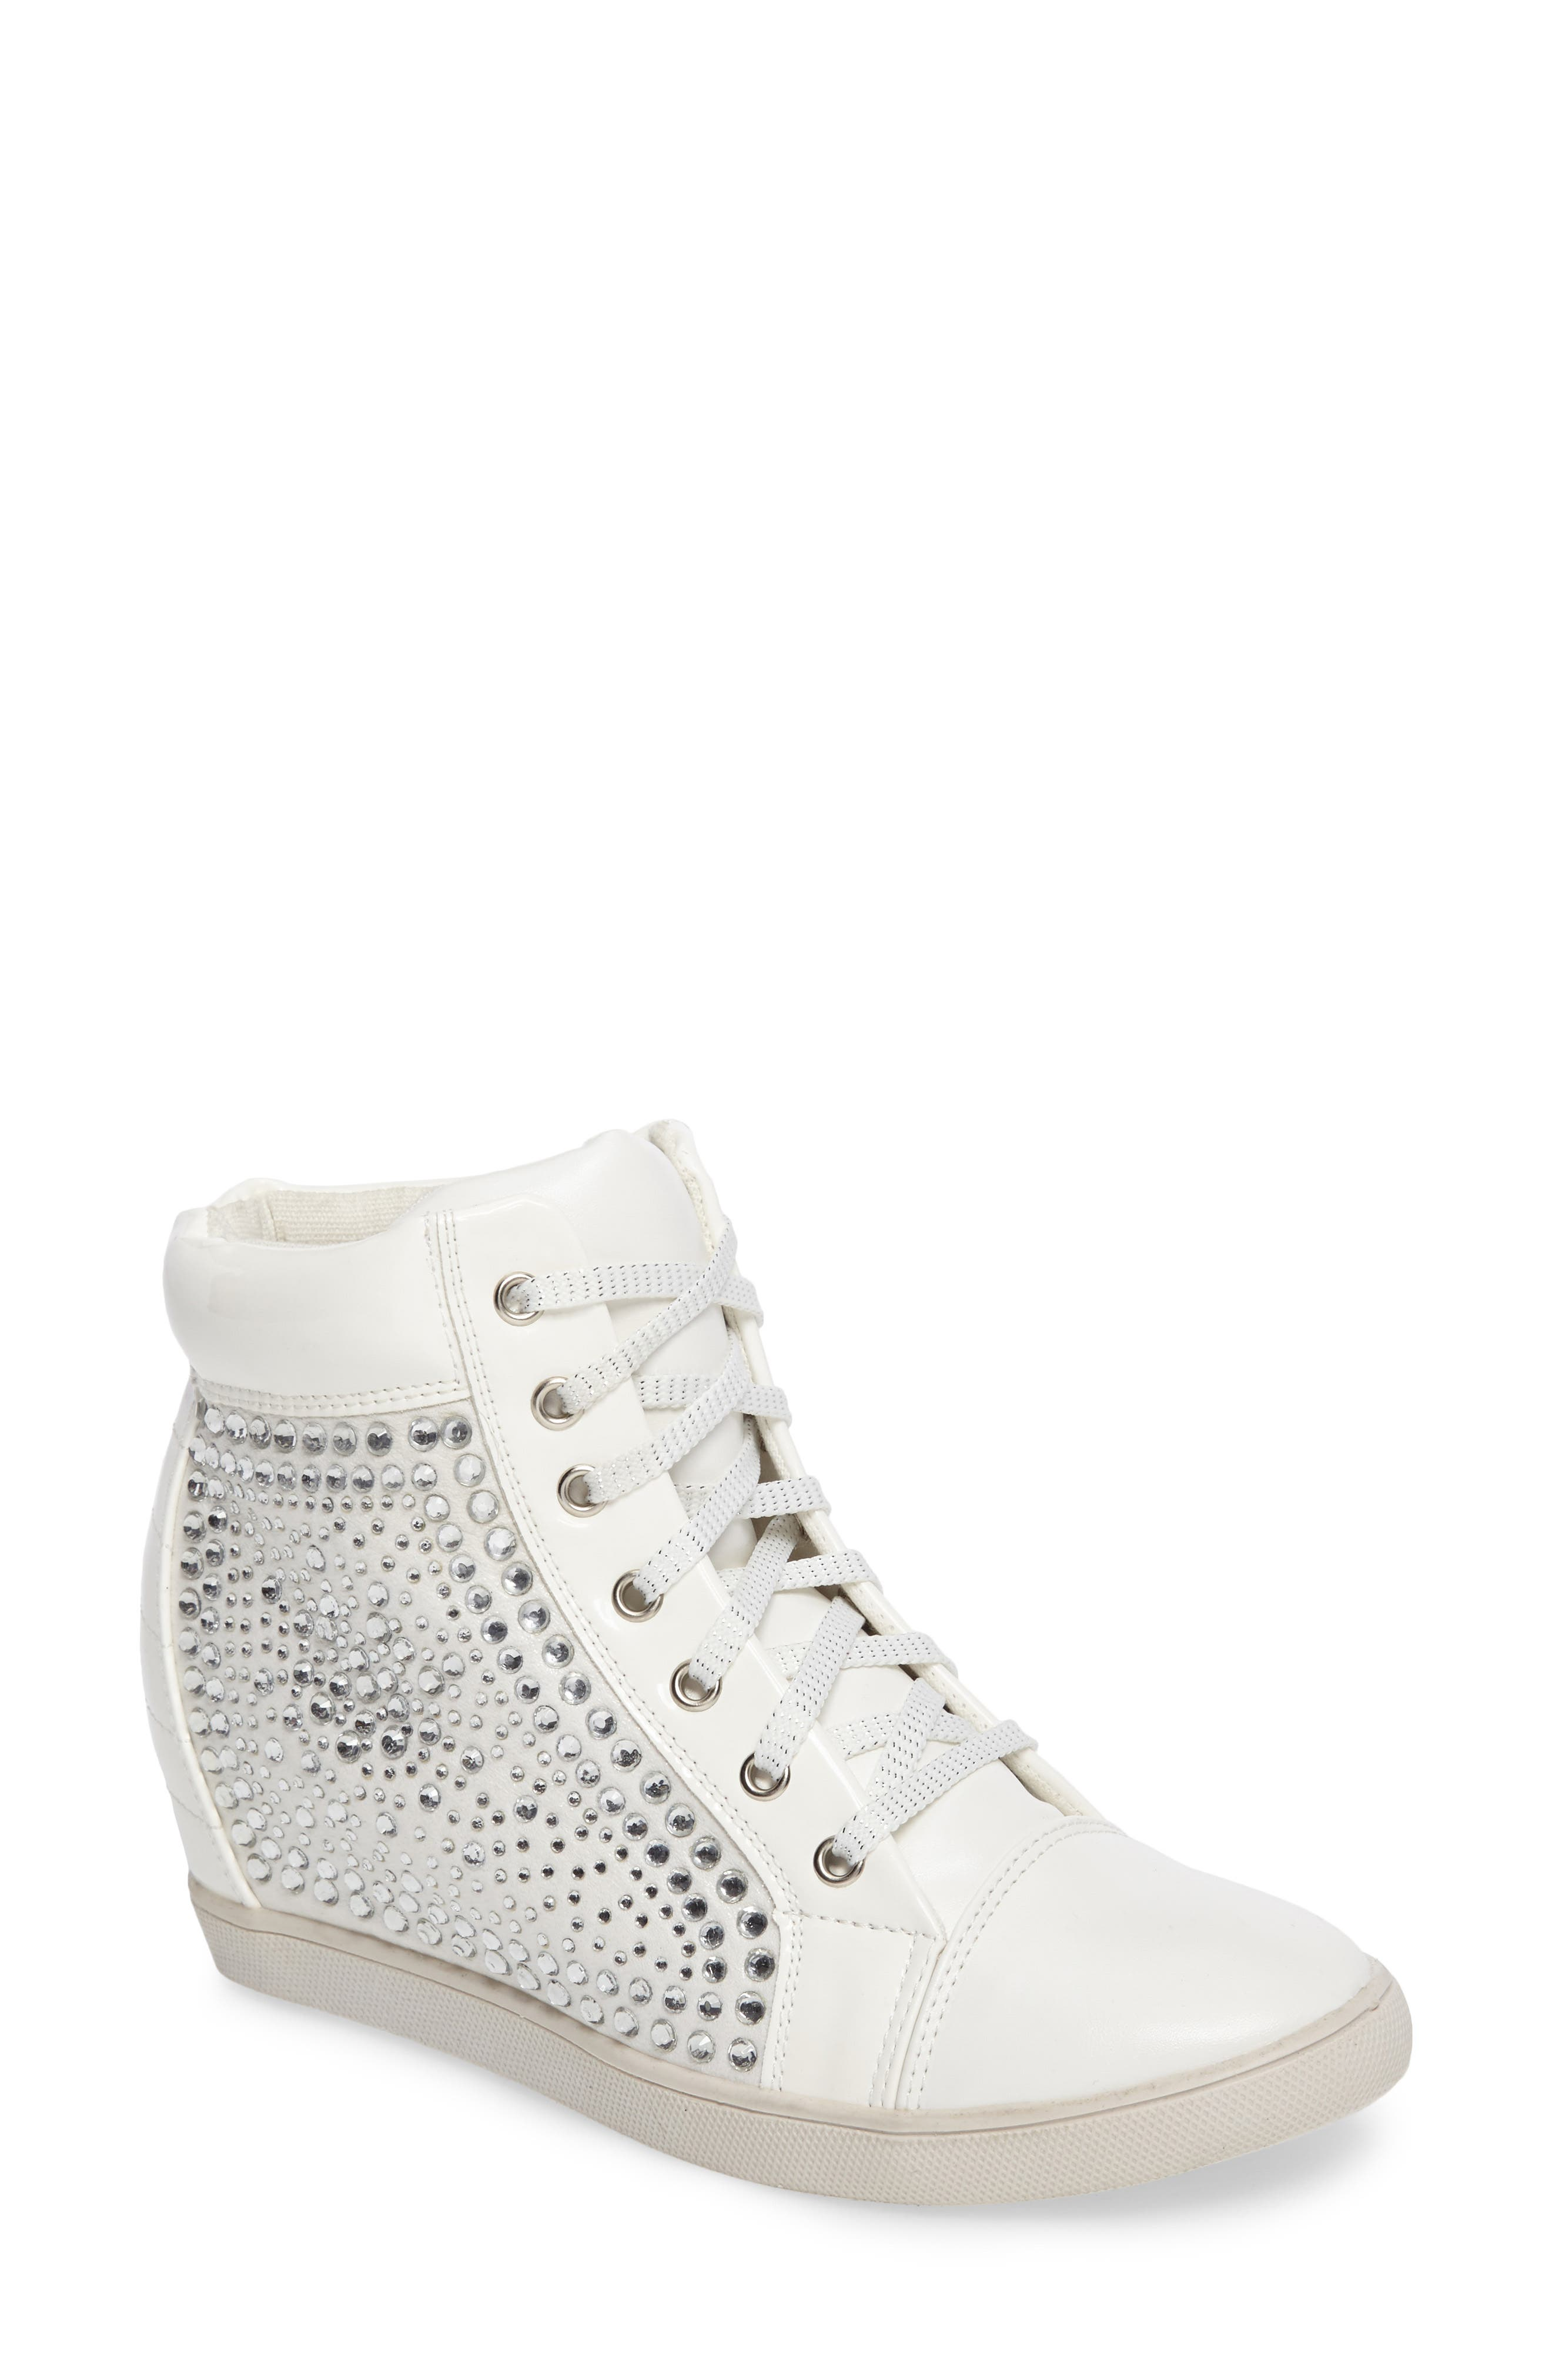 Lauren Lorraine Hidden Wedge Sneaker (Women)